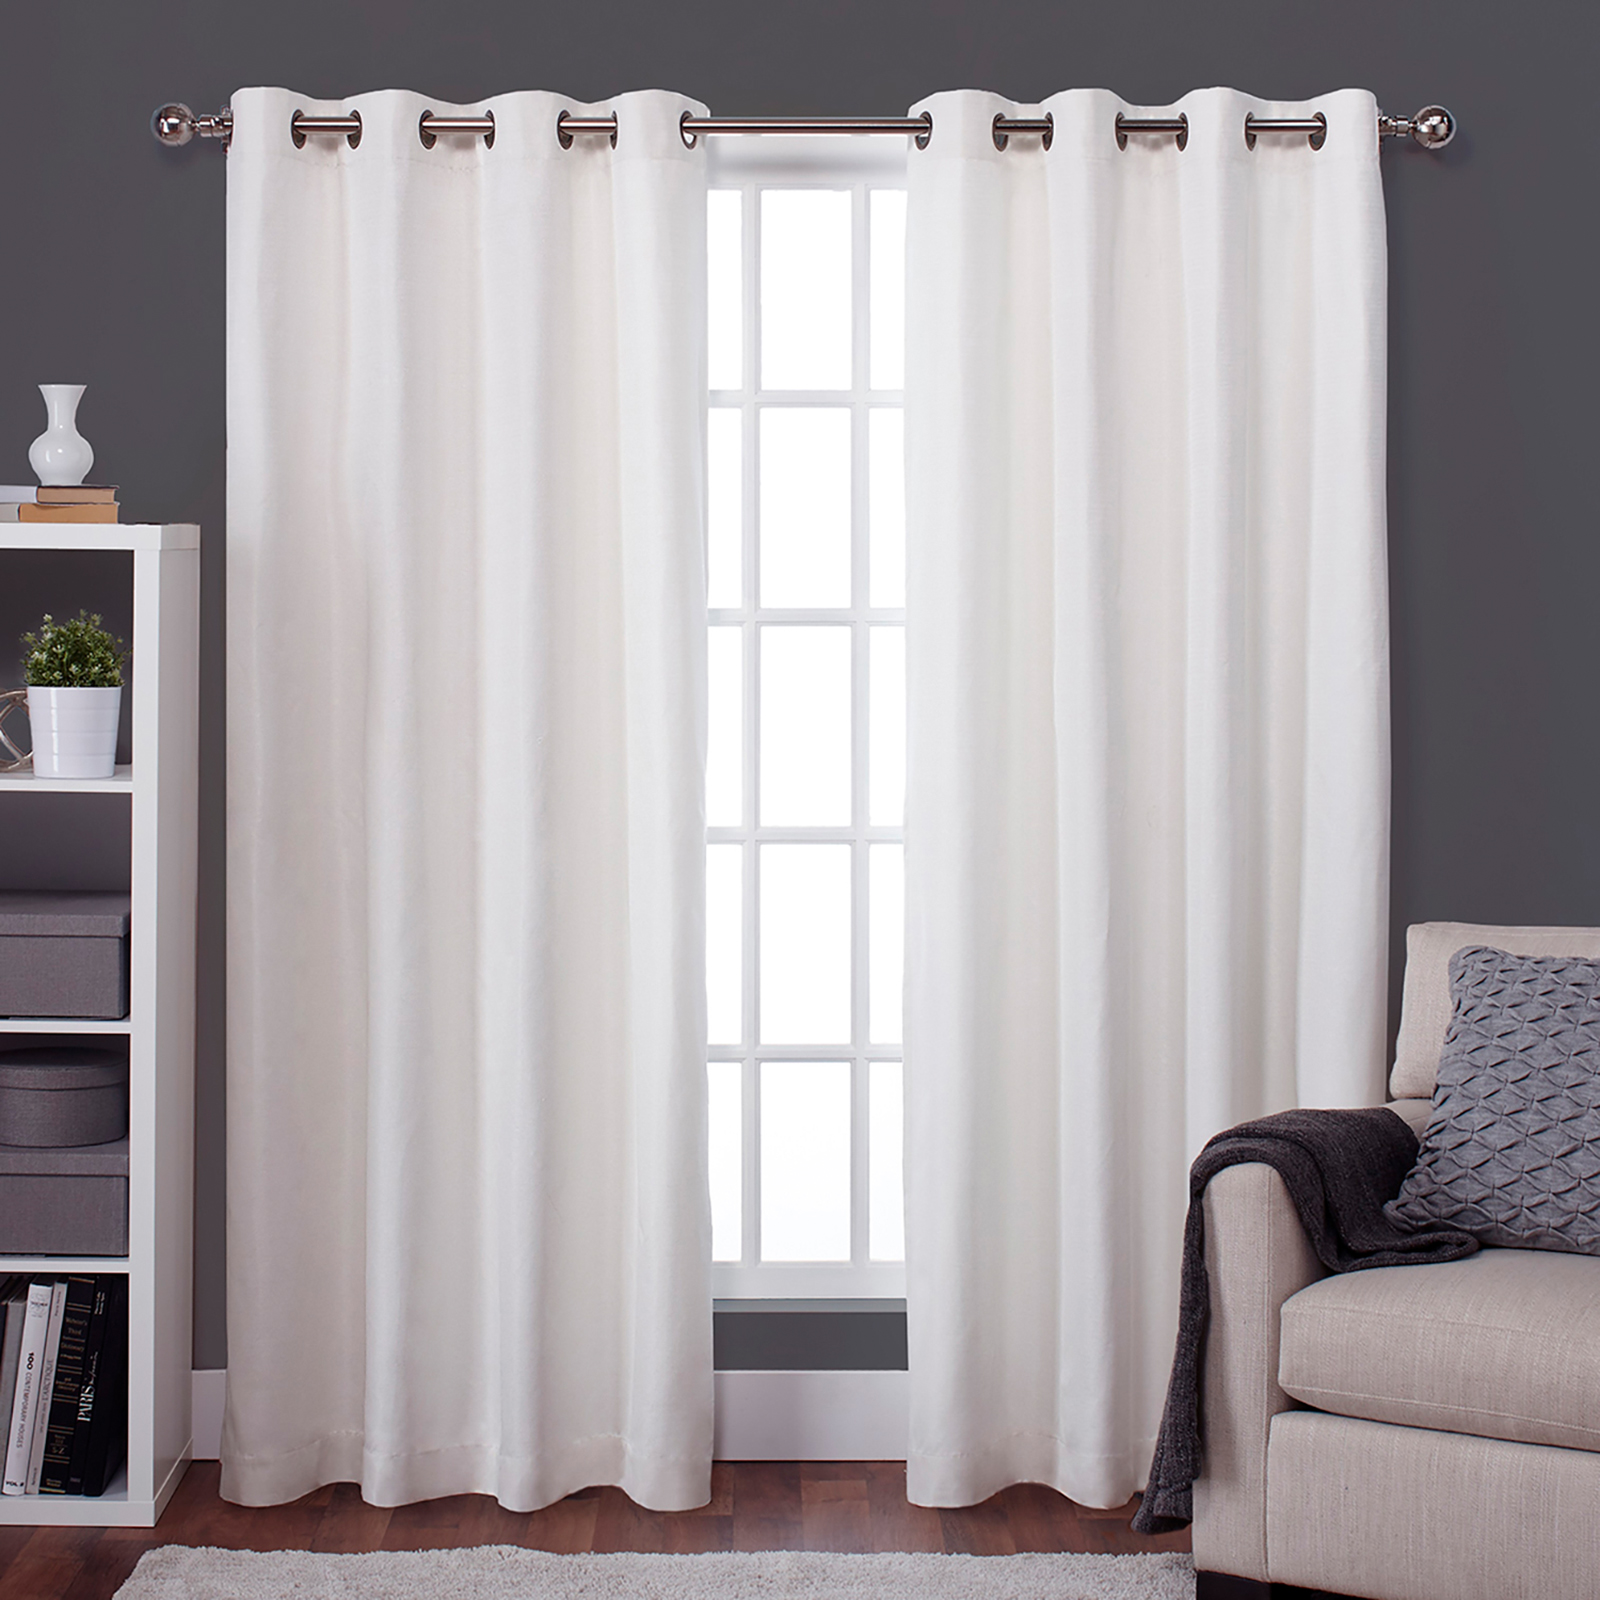 target faux silk darkening curtains a p curtain thermal panel lined jardin panels room shield